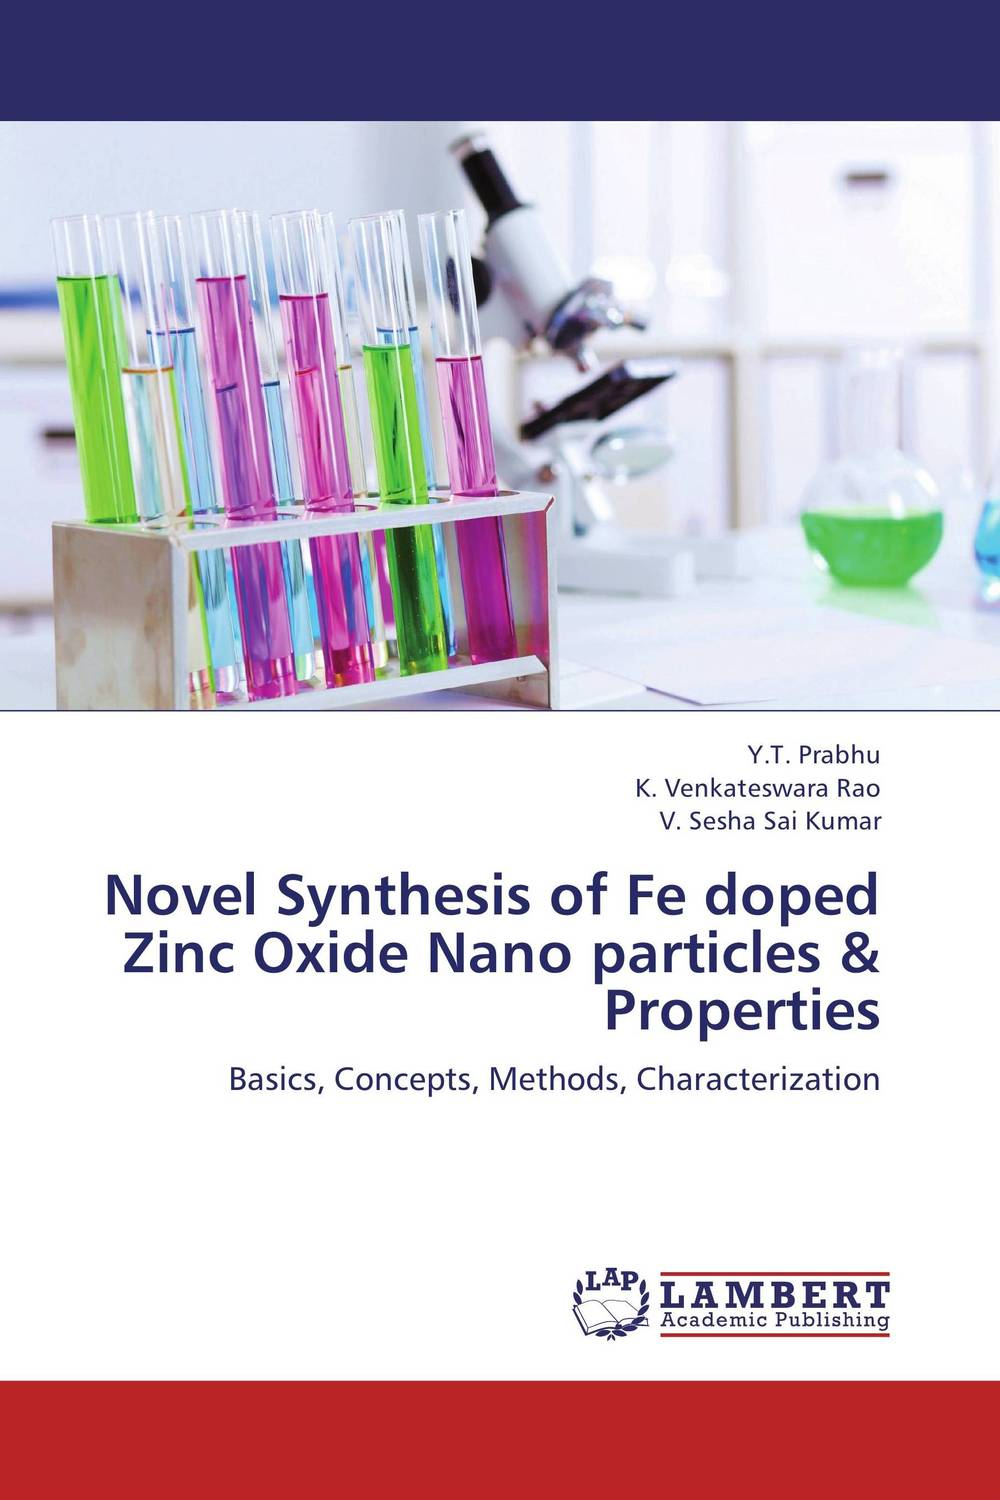 Novel Synthesis of Fe doped Zinc Oxide Nano particles & Properties the lonely polygamist – a novel